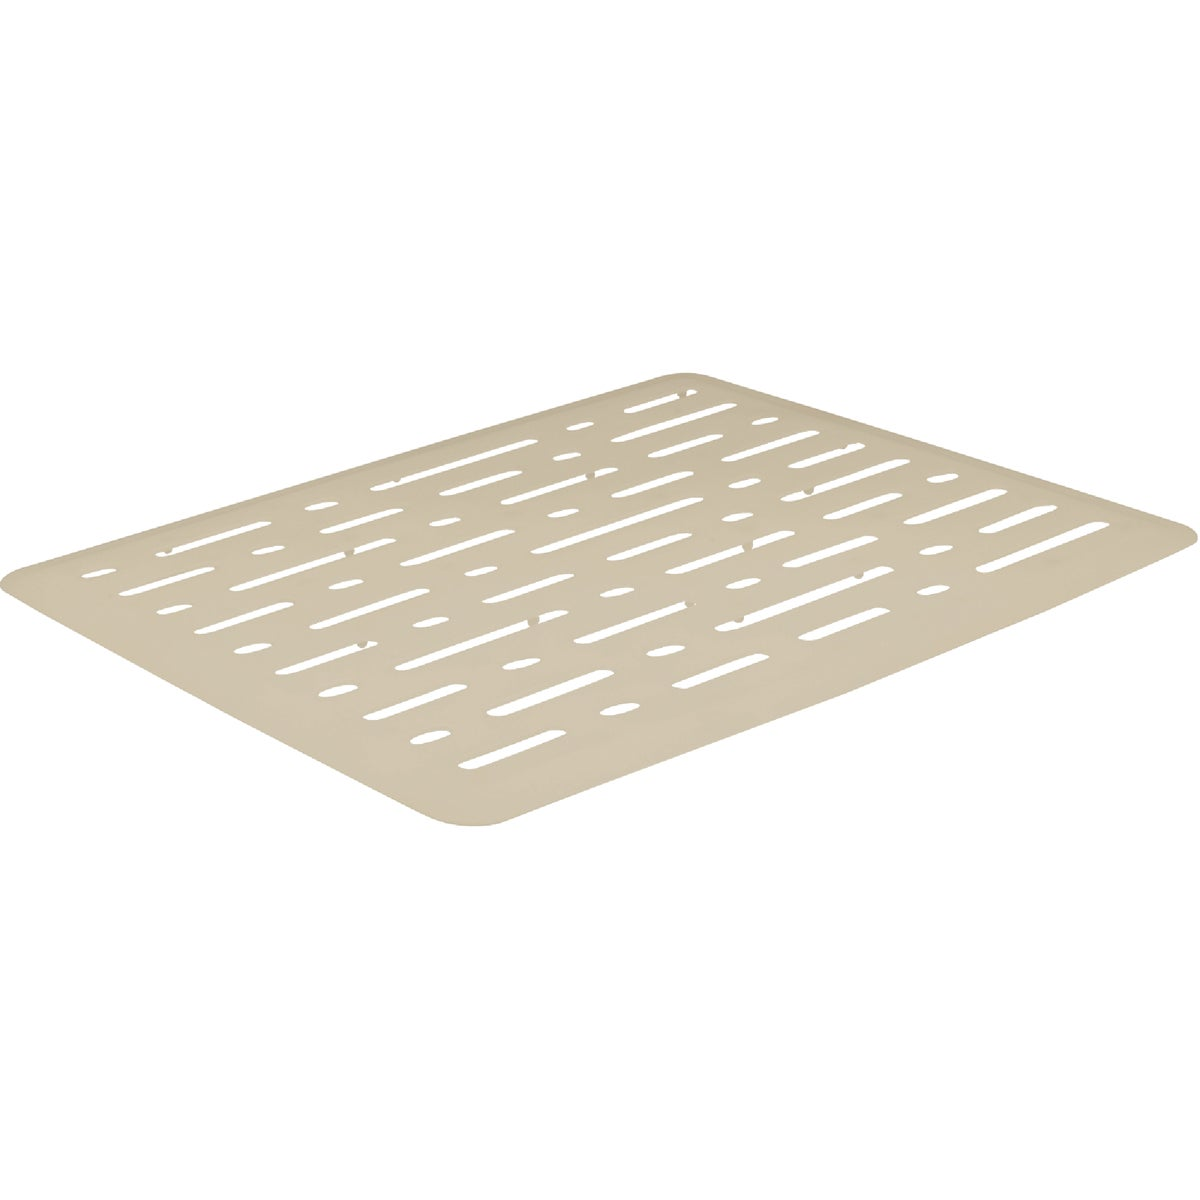 BISQUE SMALL SINK MAT